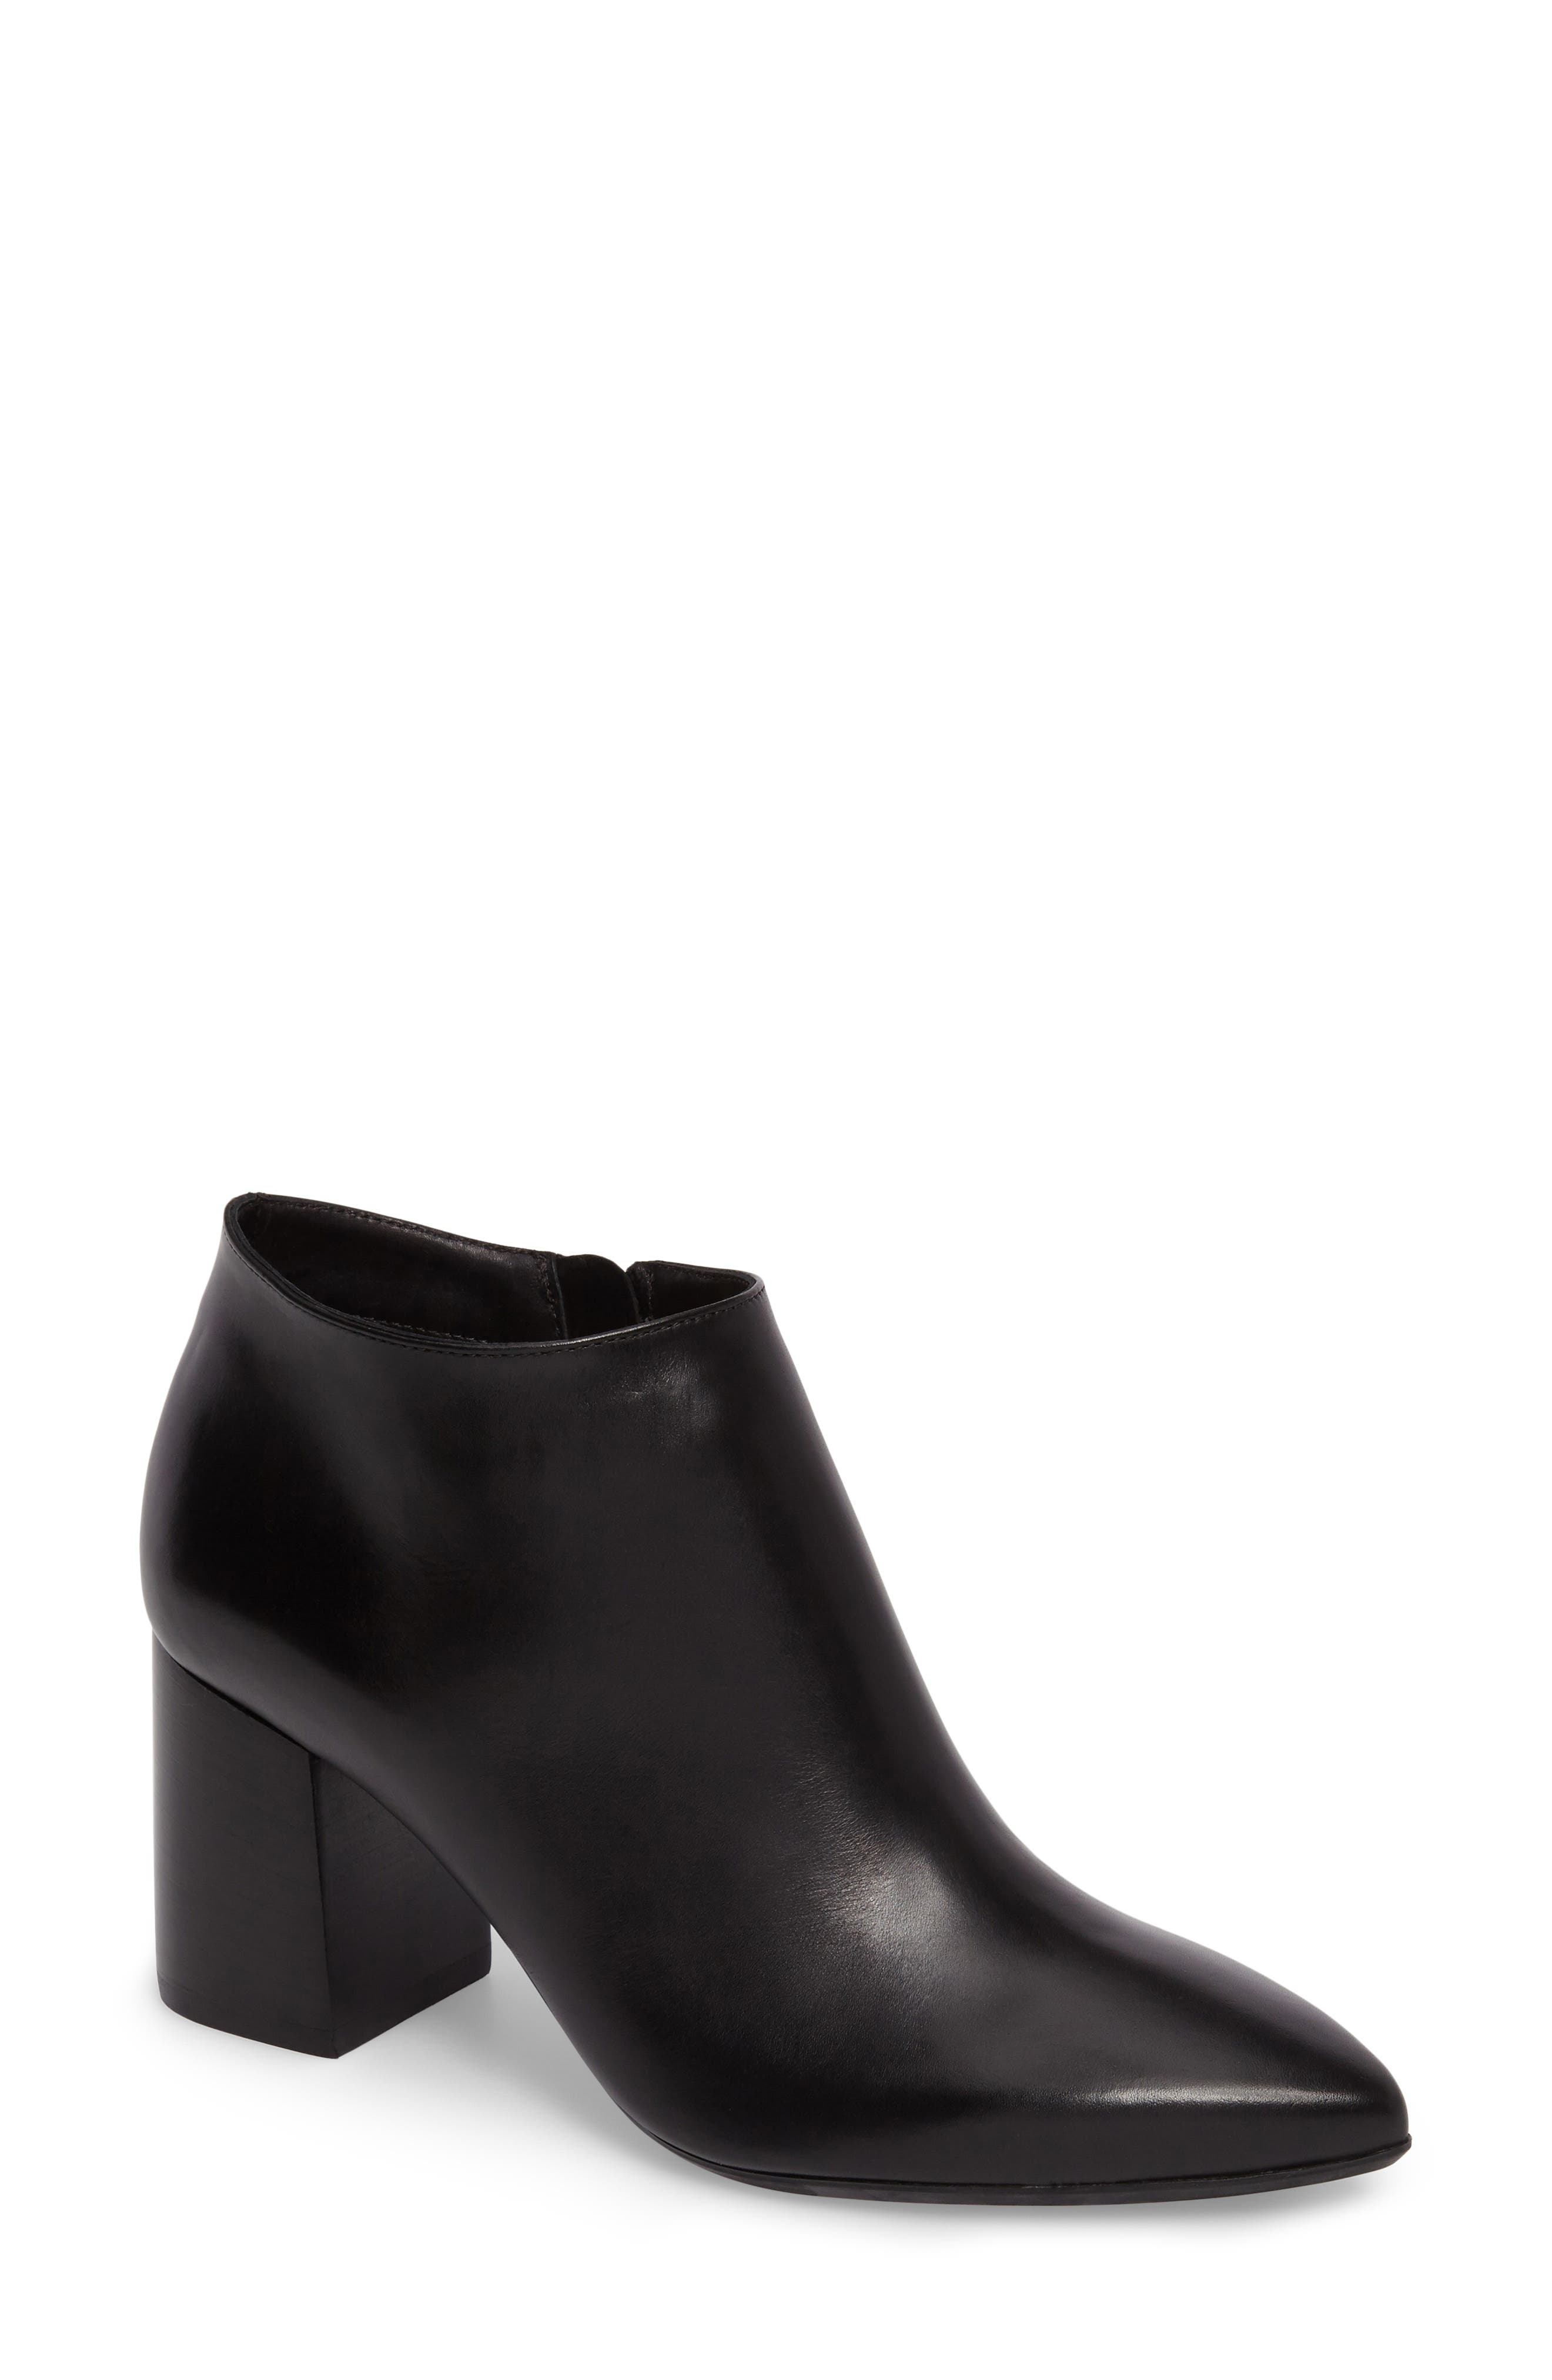 Maria Pointy Toe Bootie,                         Main,                         color, Black Leather